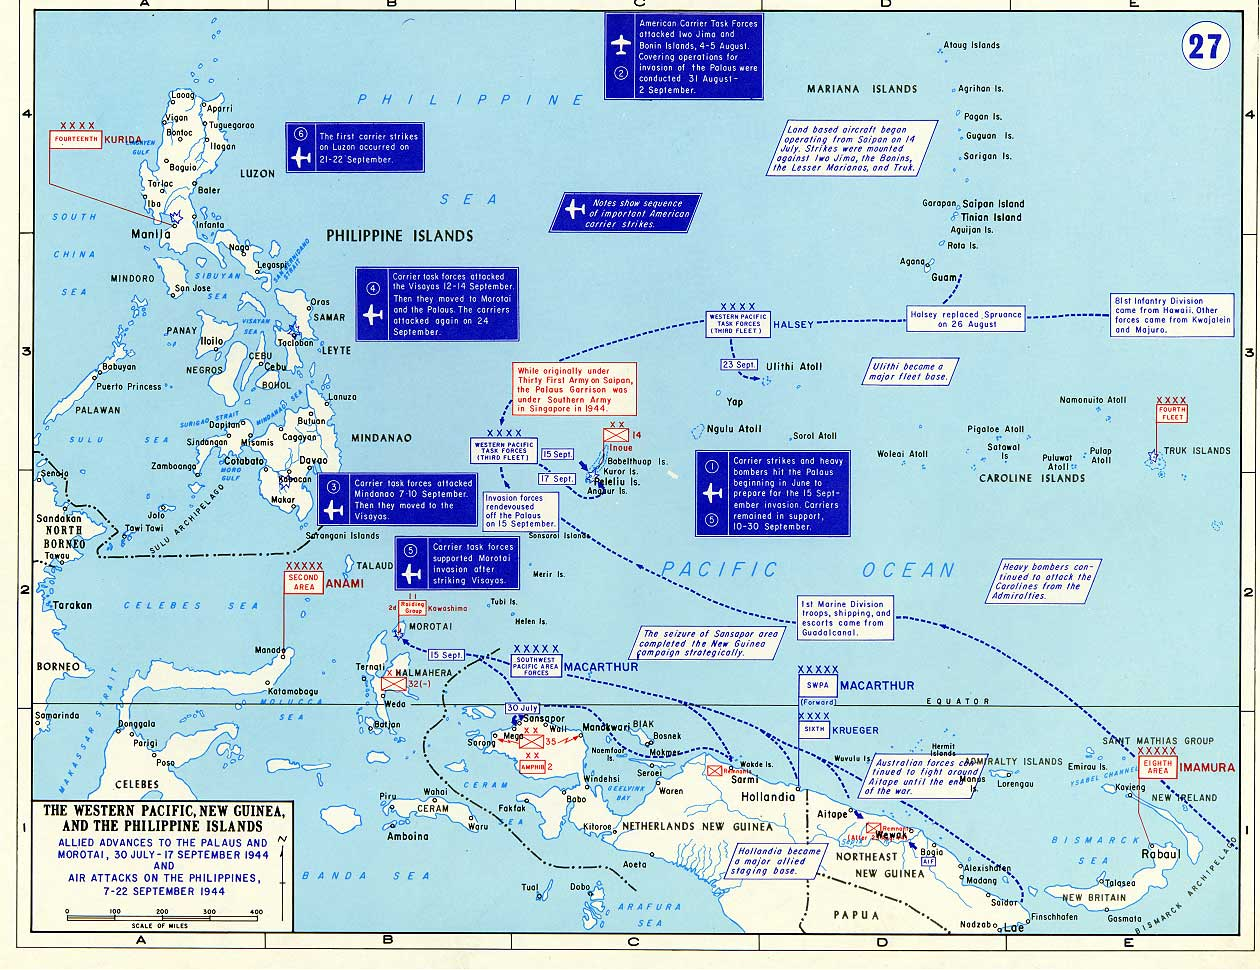 World War II - Asia-Pacific | United States Military Academy ... on map of japan military, map of japan animation, japanese territory in ww2, japan flag ww2, map of japan christmas, map of japan art, map of japan school, map of japan modern, map of japan japanese, map of japan russia, map of japan 1950s, map of japan 1940s, map of japan korea, map of japan world war 2, map of japan history, map of japan food, map of japan china, map of japan religion, map of japan pokemon, extent of japanese empire in ww2,